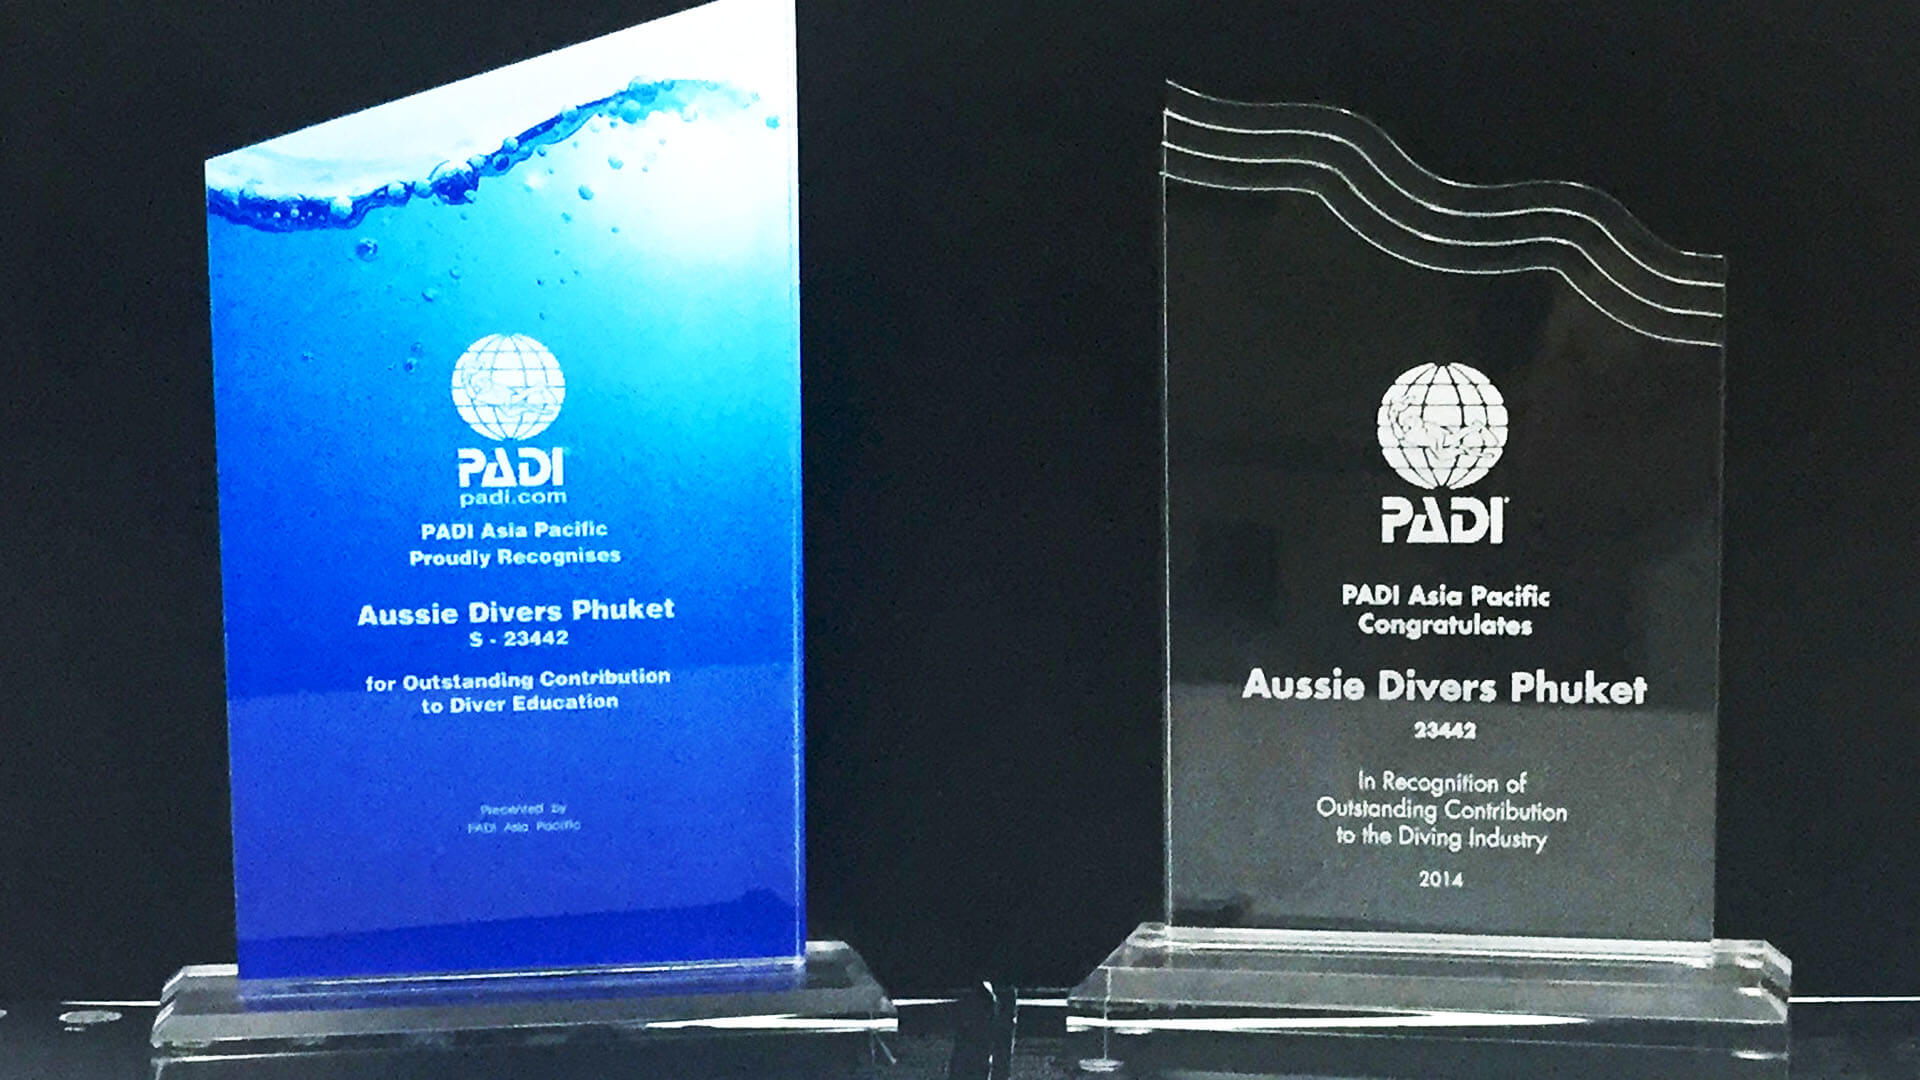 Aussie Divers Phuket Wins Two Major PADI Awards